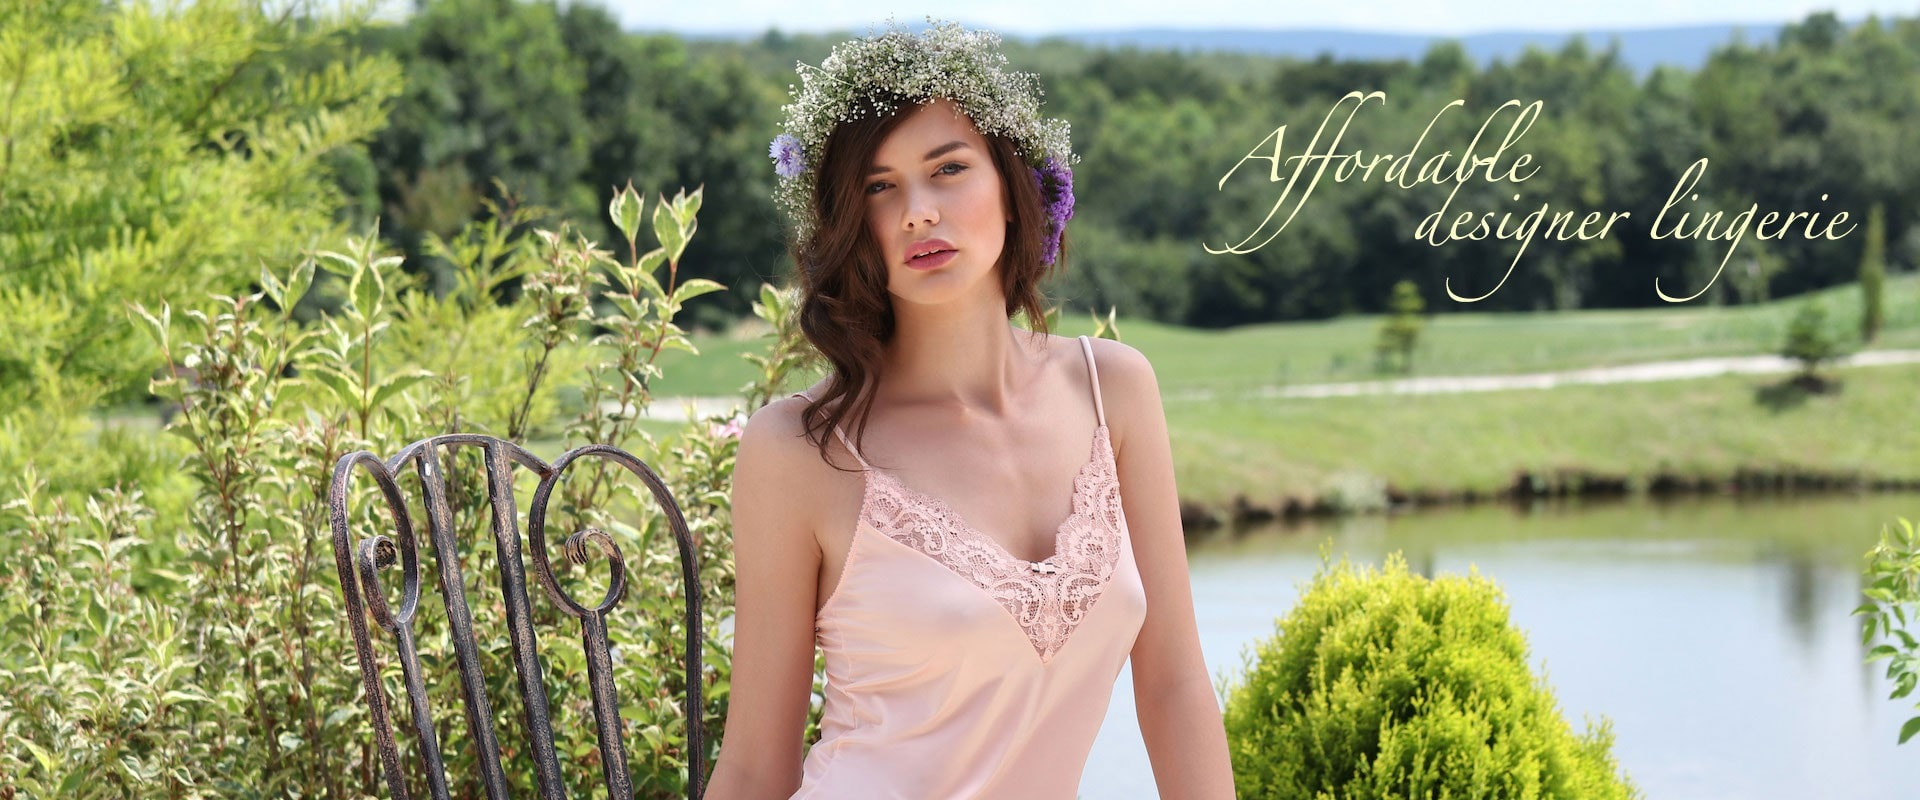 affordable designer lingerie at www.tub.ie